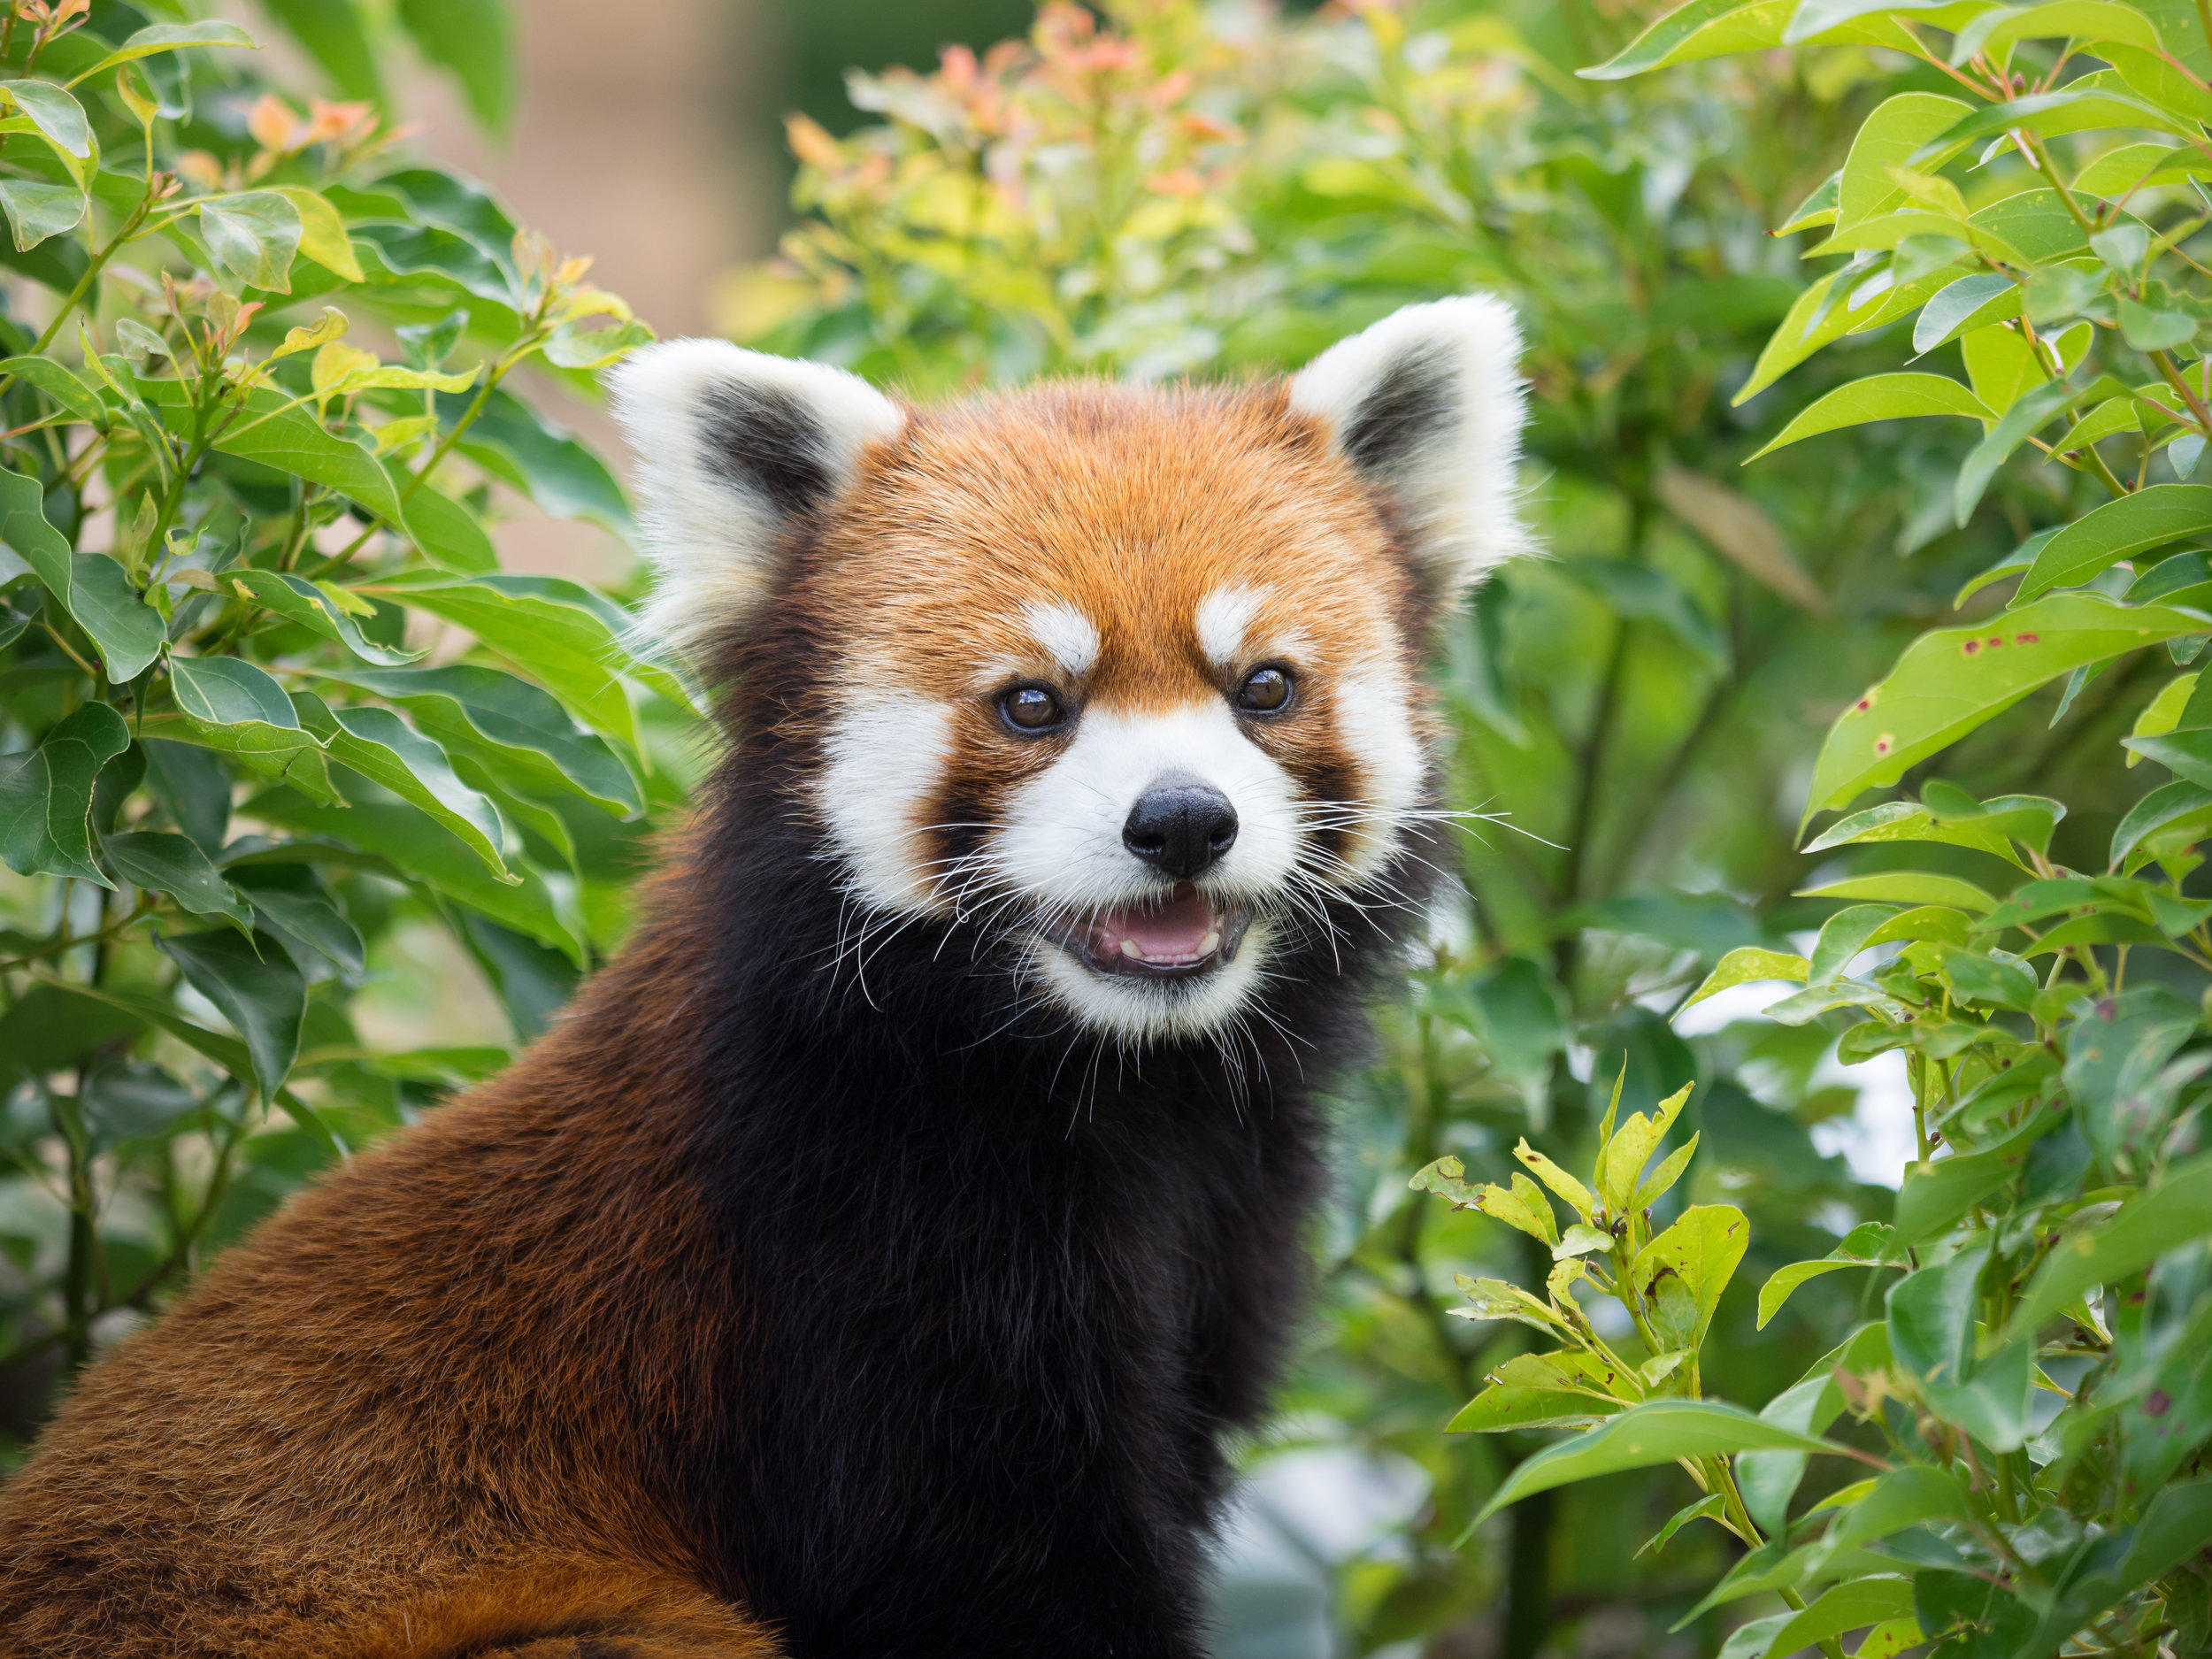 Again, there are actually no available stock photos for 'tech people in their 50s and 60s' - which demonstrates the problem I'm spelling out here. So, here's another red panda.